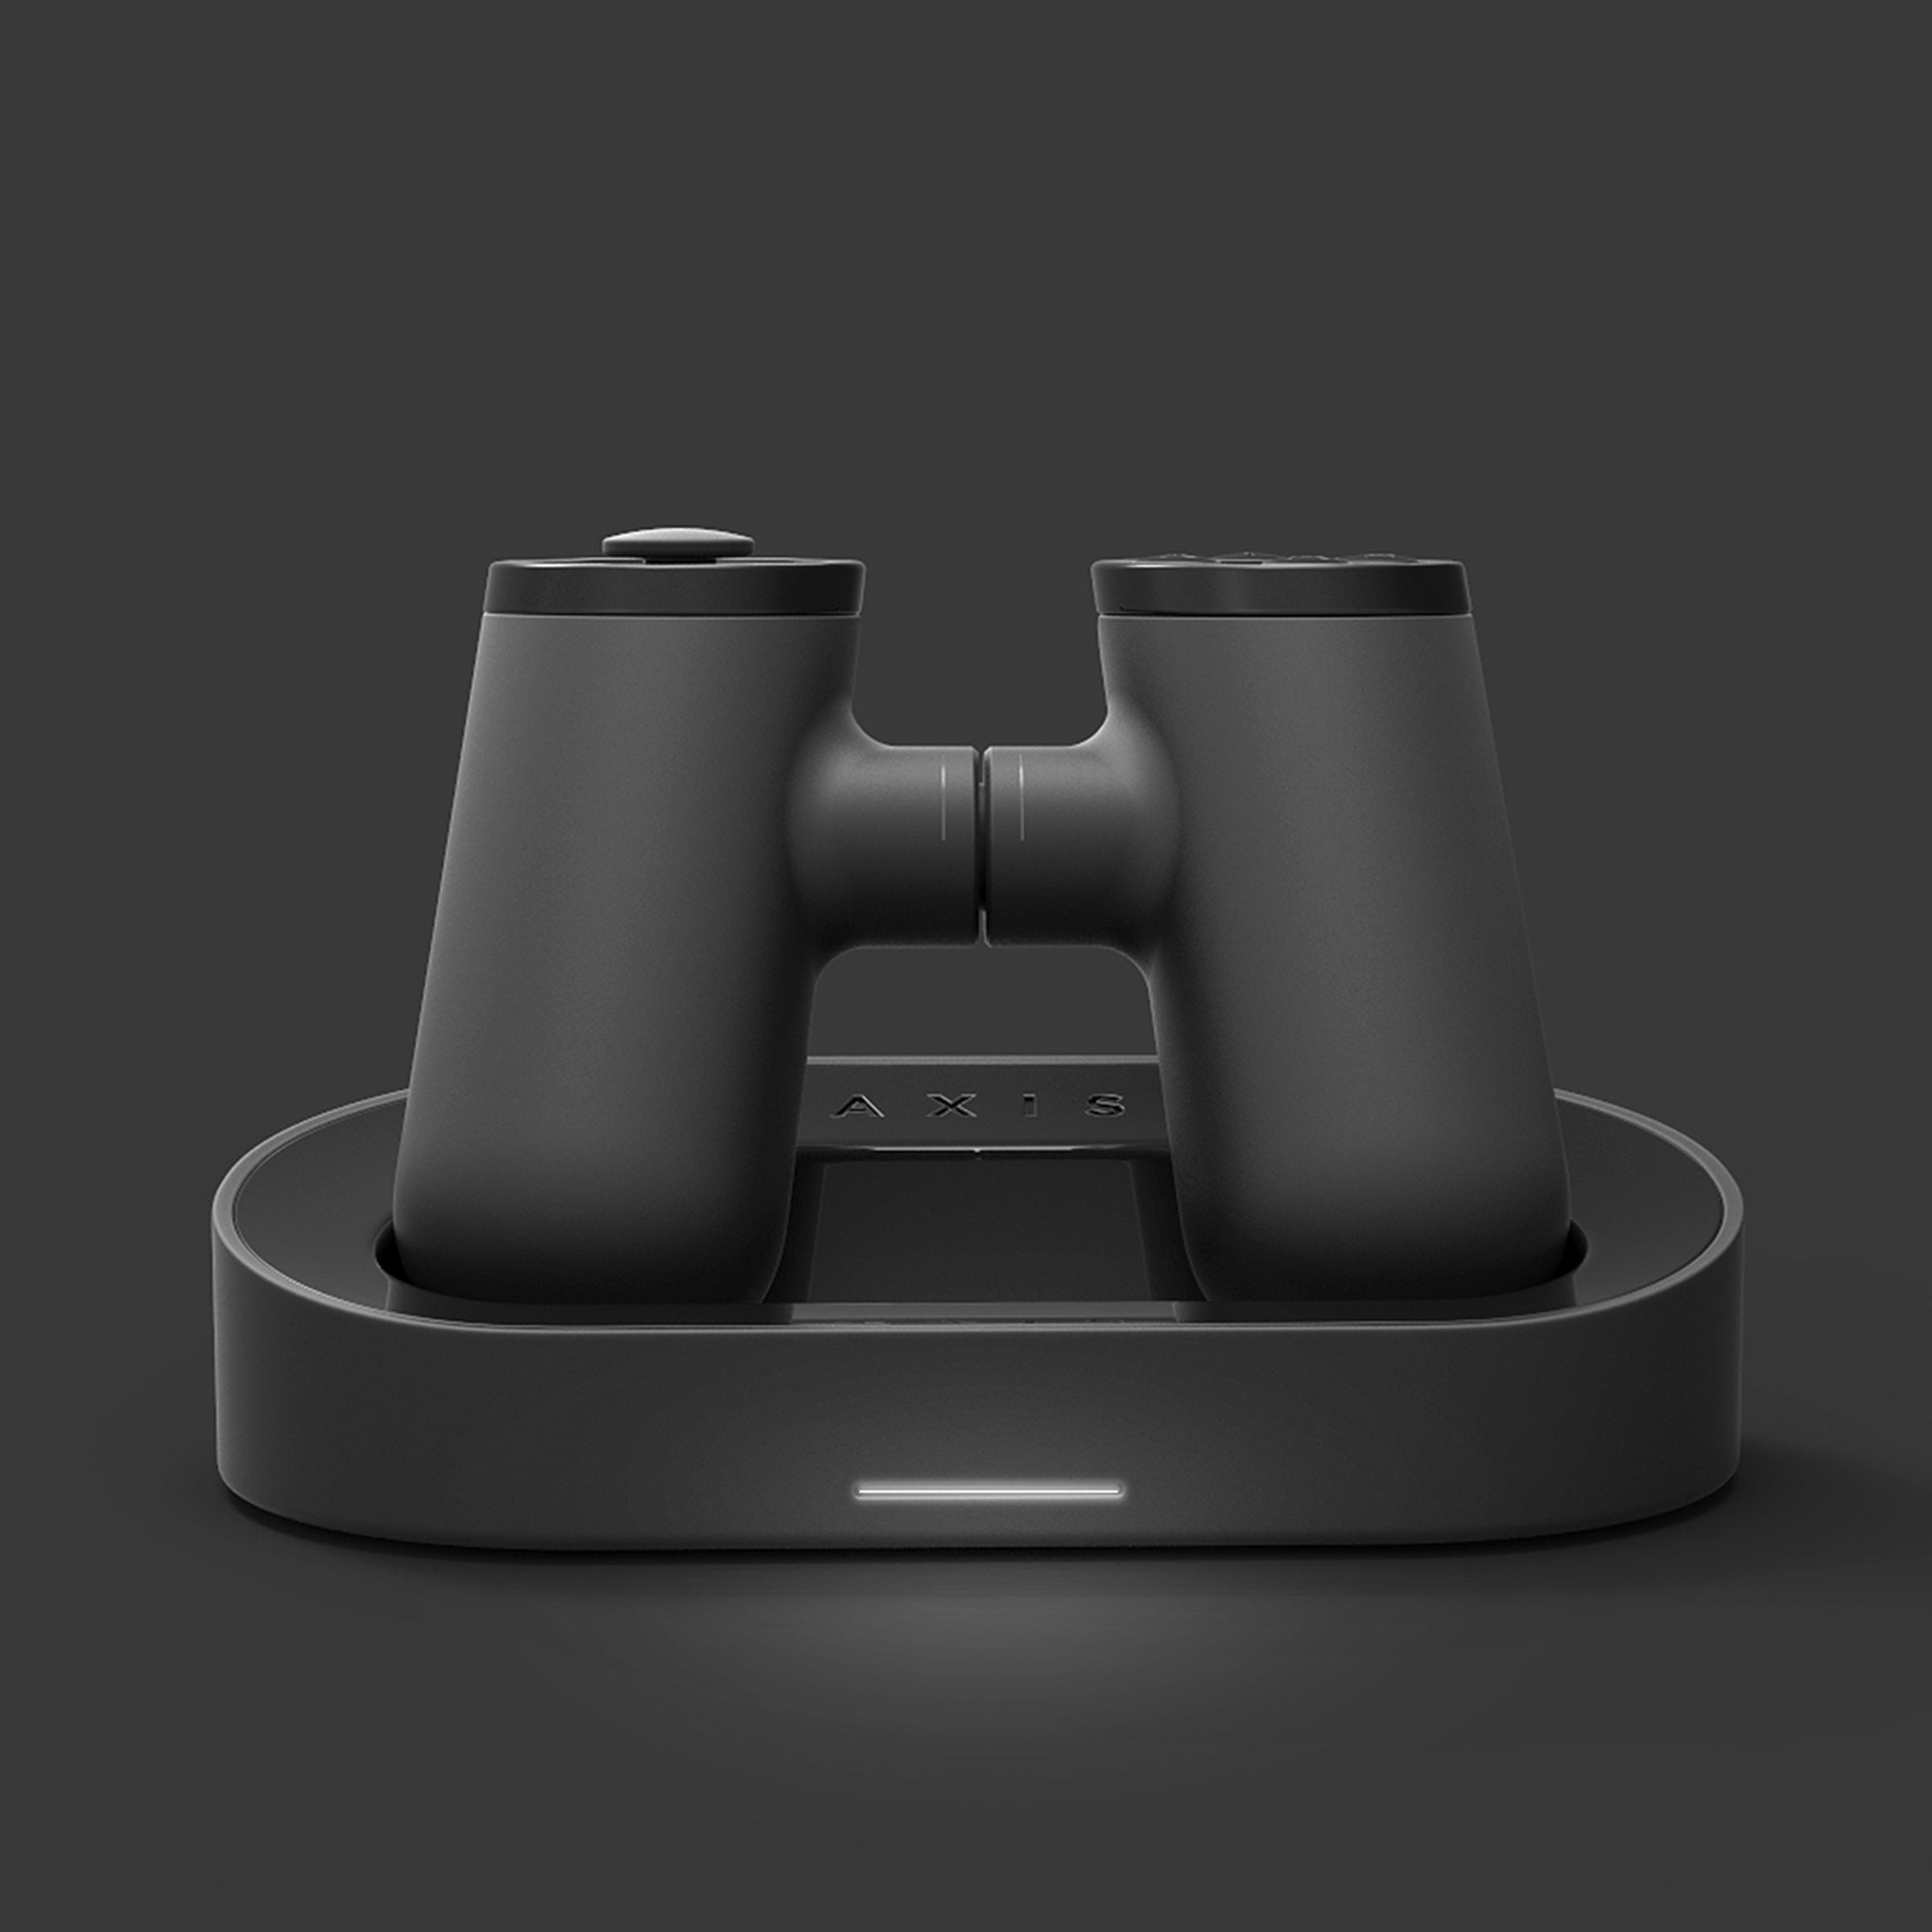 The inductive charging dock for the Axis Controller. Copyright Creative Session